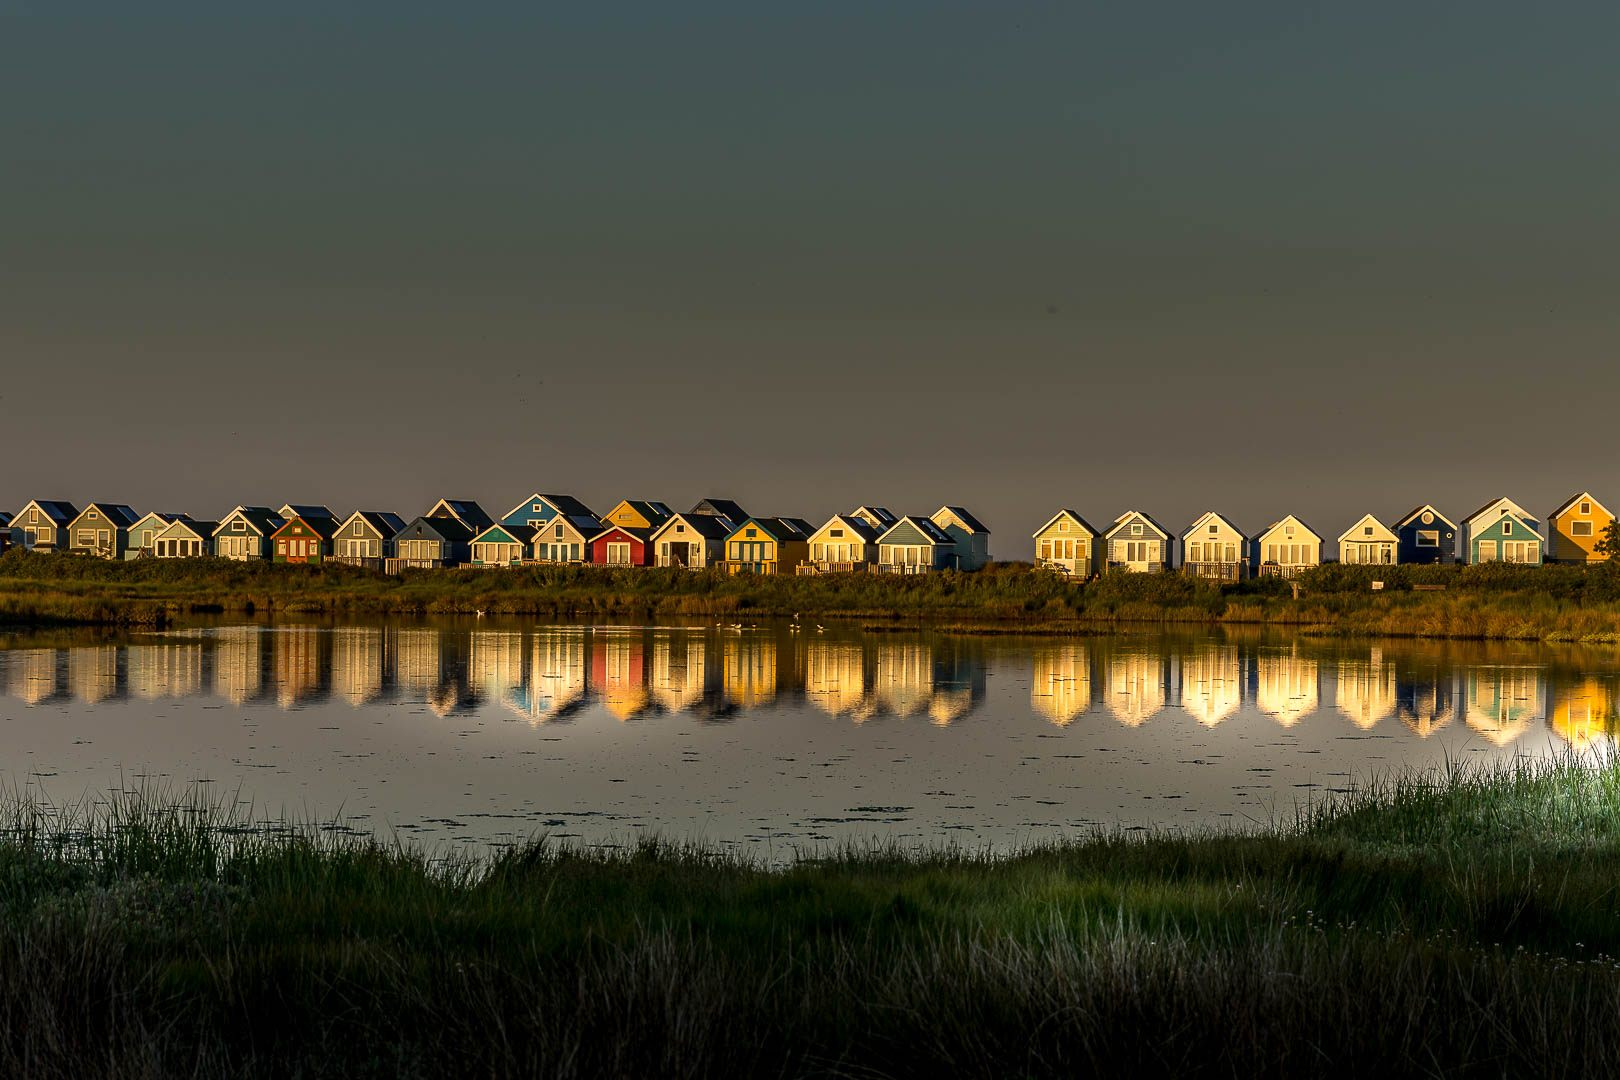 Beach hut reflection